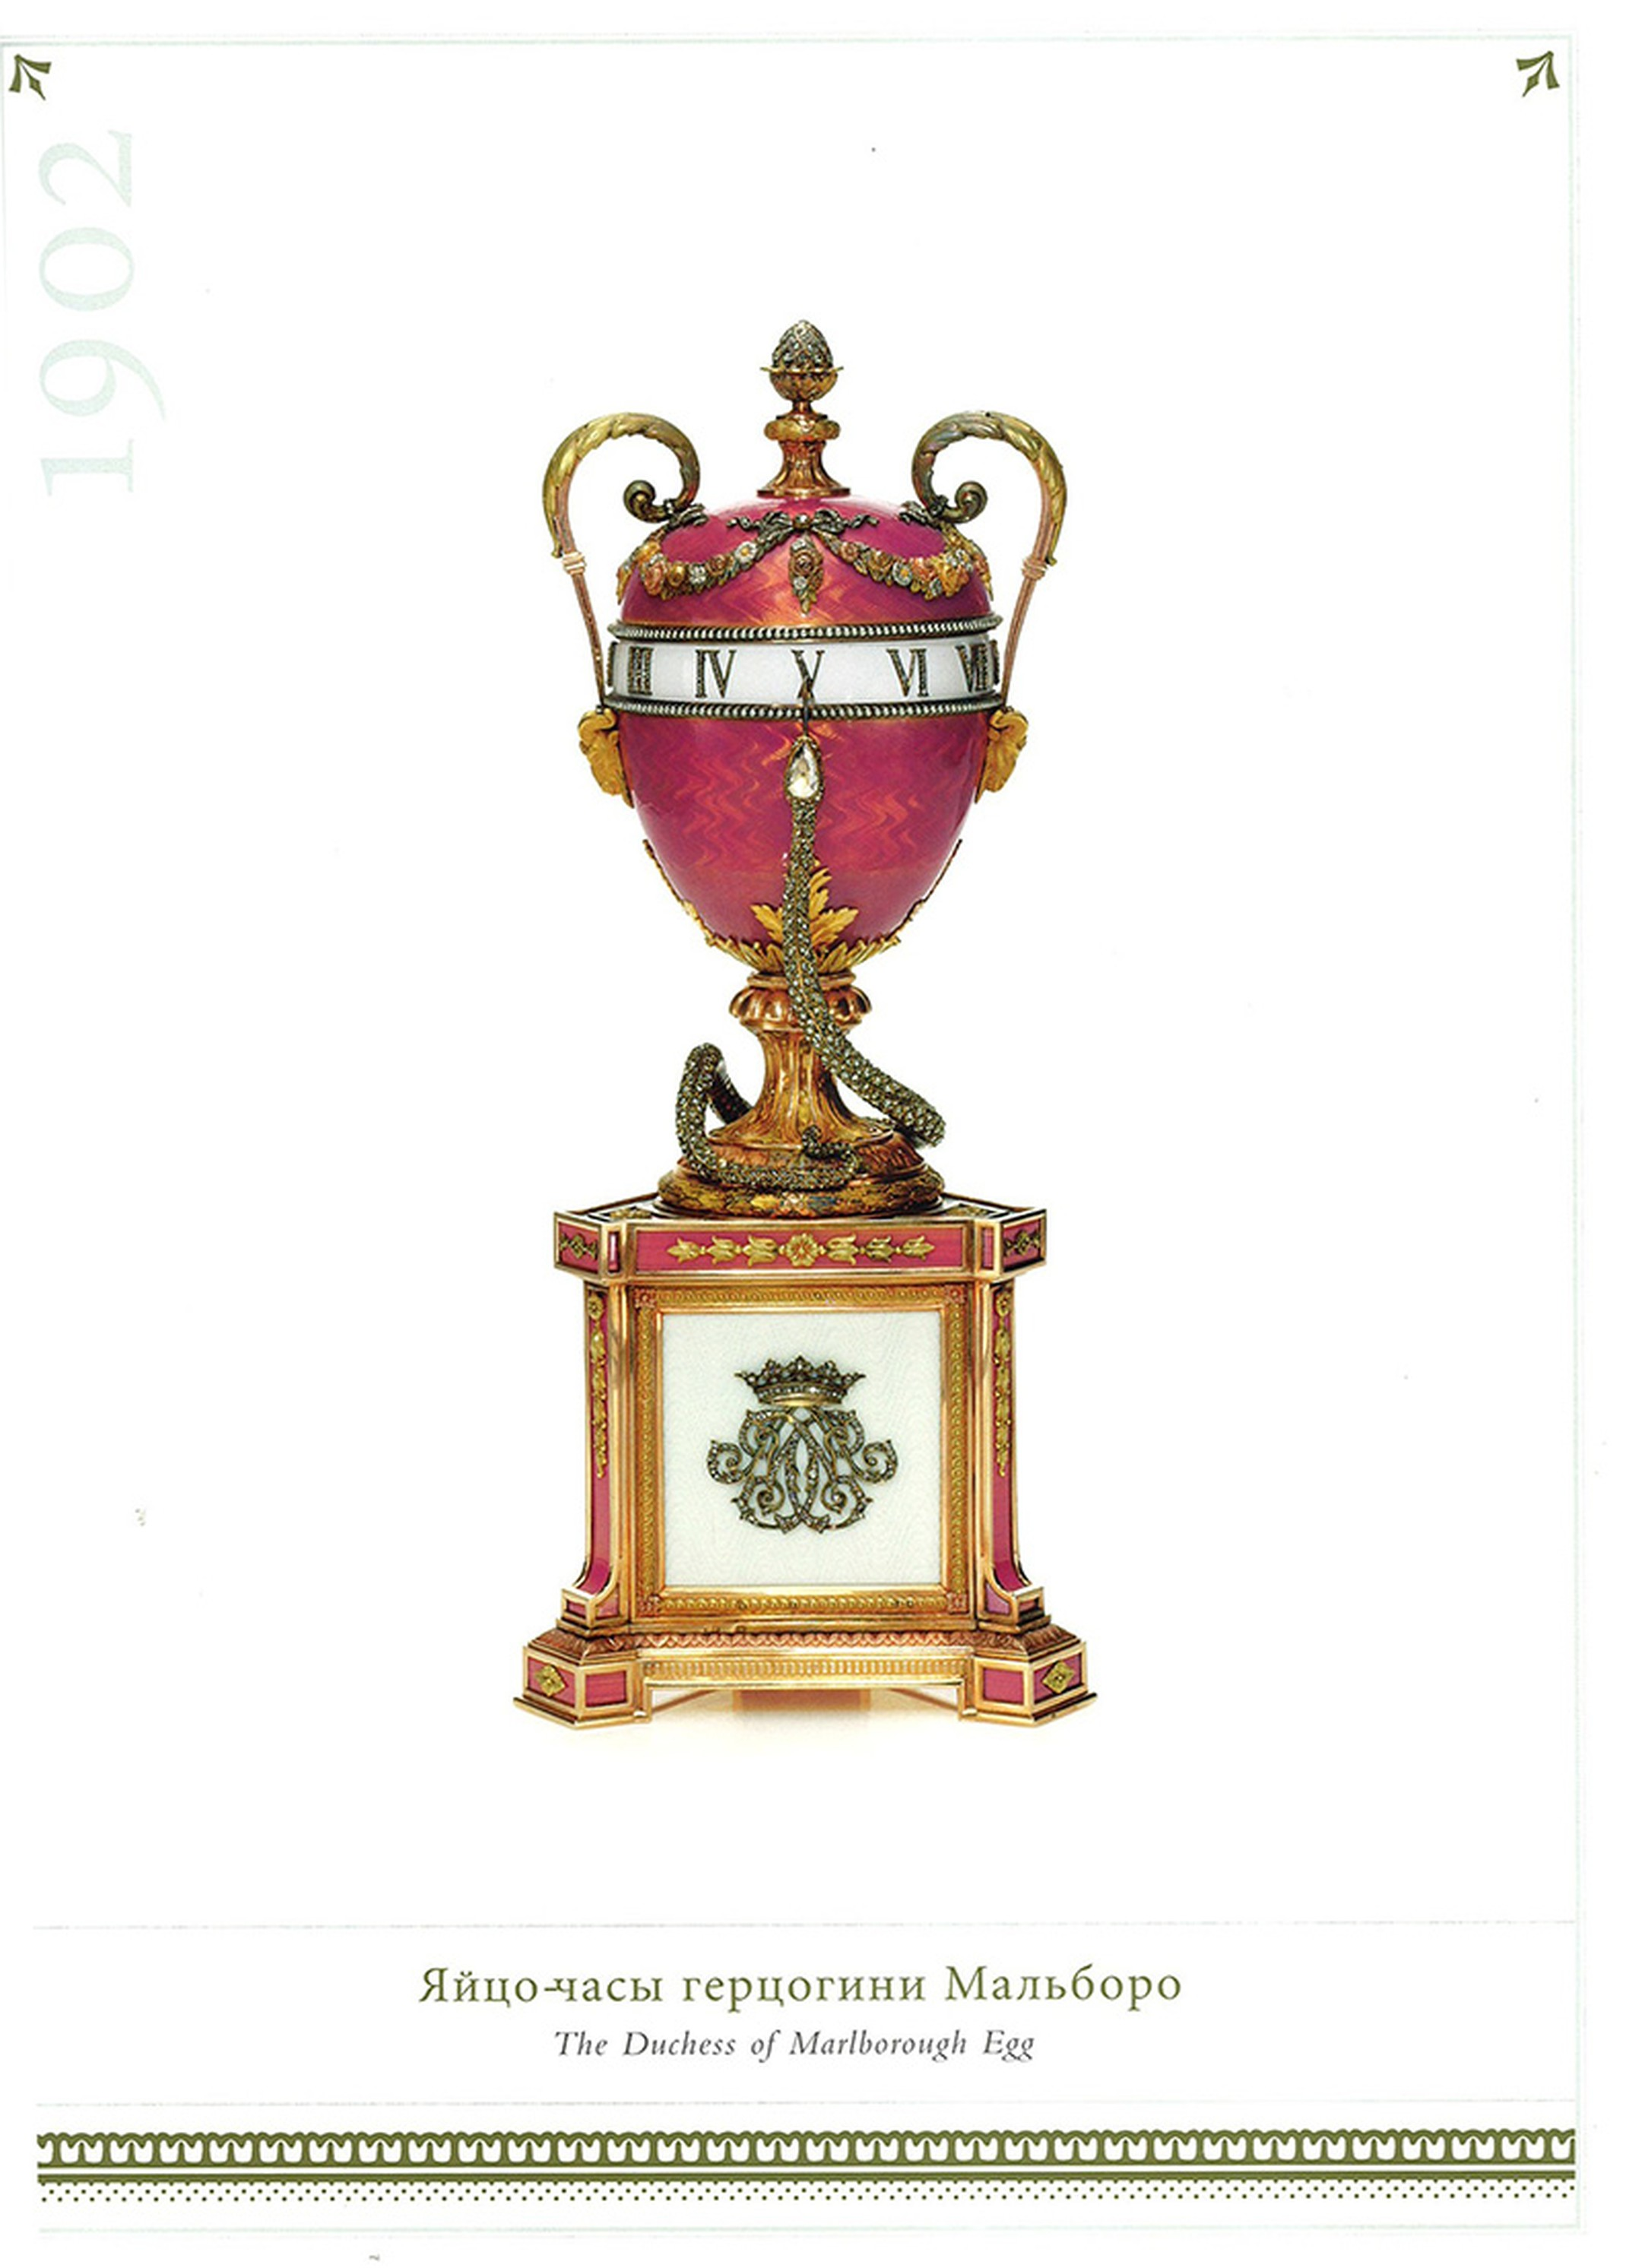 Faberge-Duchess-of-Marlborough-Egg.jpg